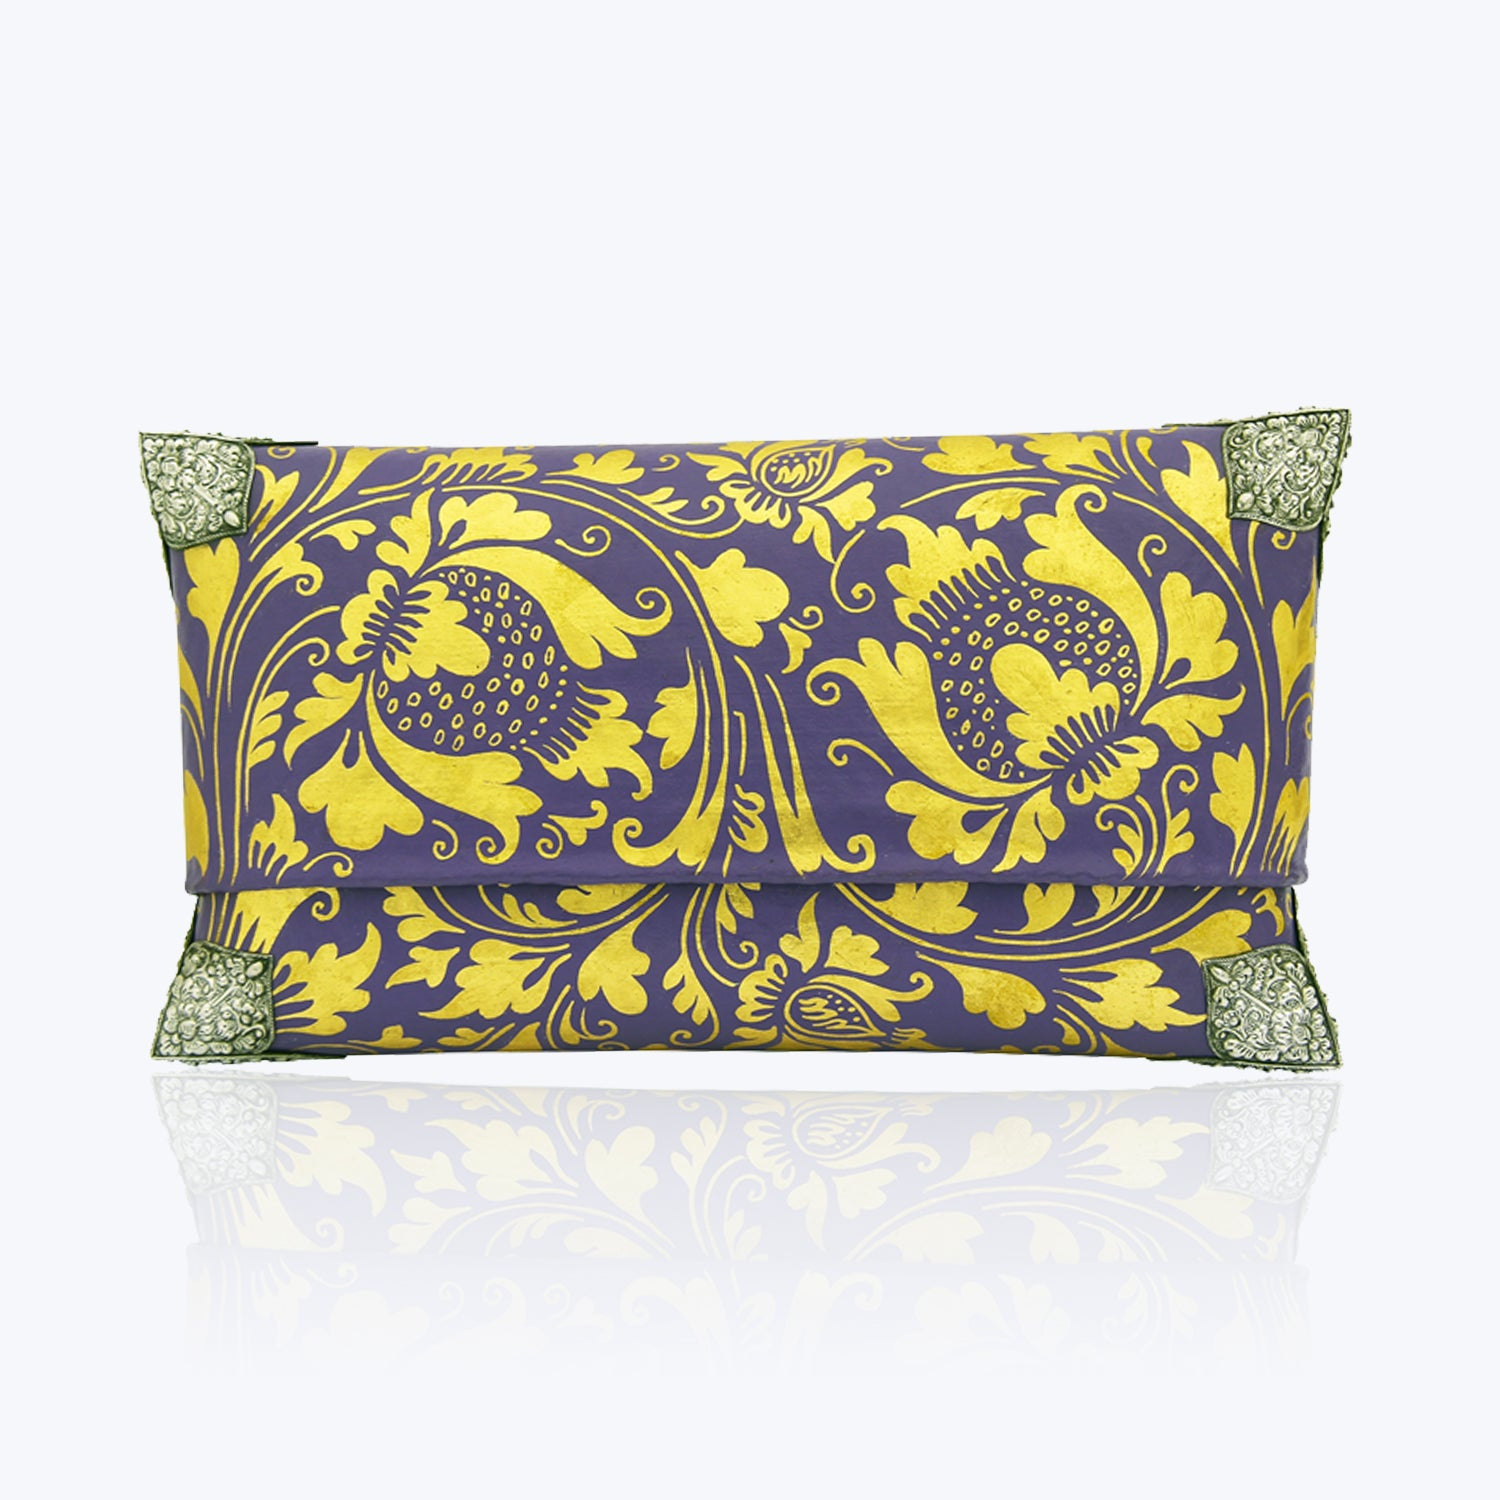 Violet & Gold Painted Handbag with Silver Corners